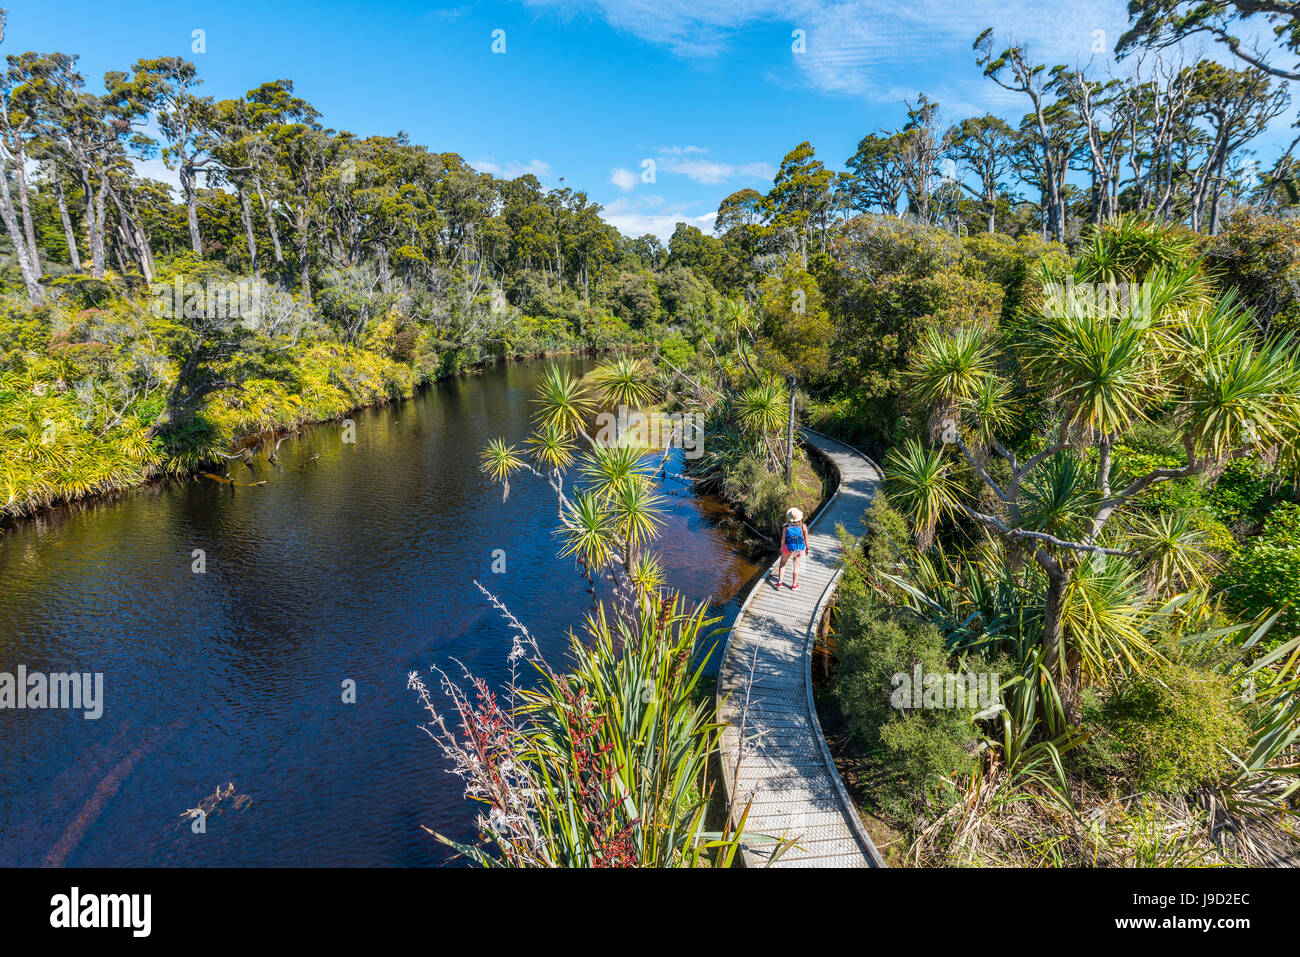 Weibliche Wanderer am Fluss mit Pfad, Ship Creek, moderate Regenwald, Haast, West Coast, New Zealand Stockbild